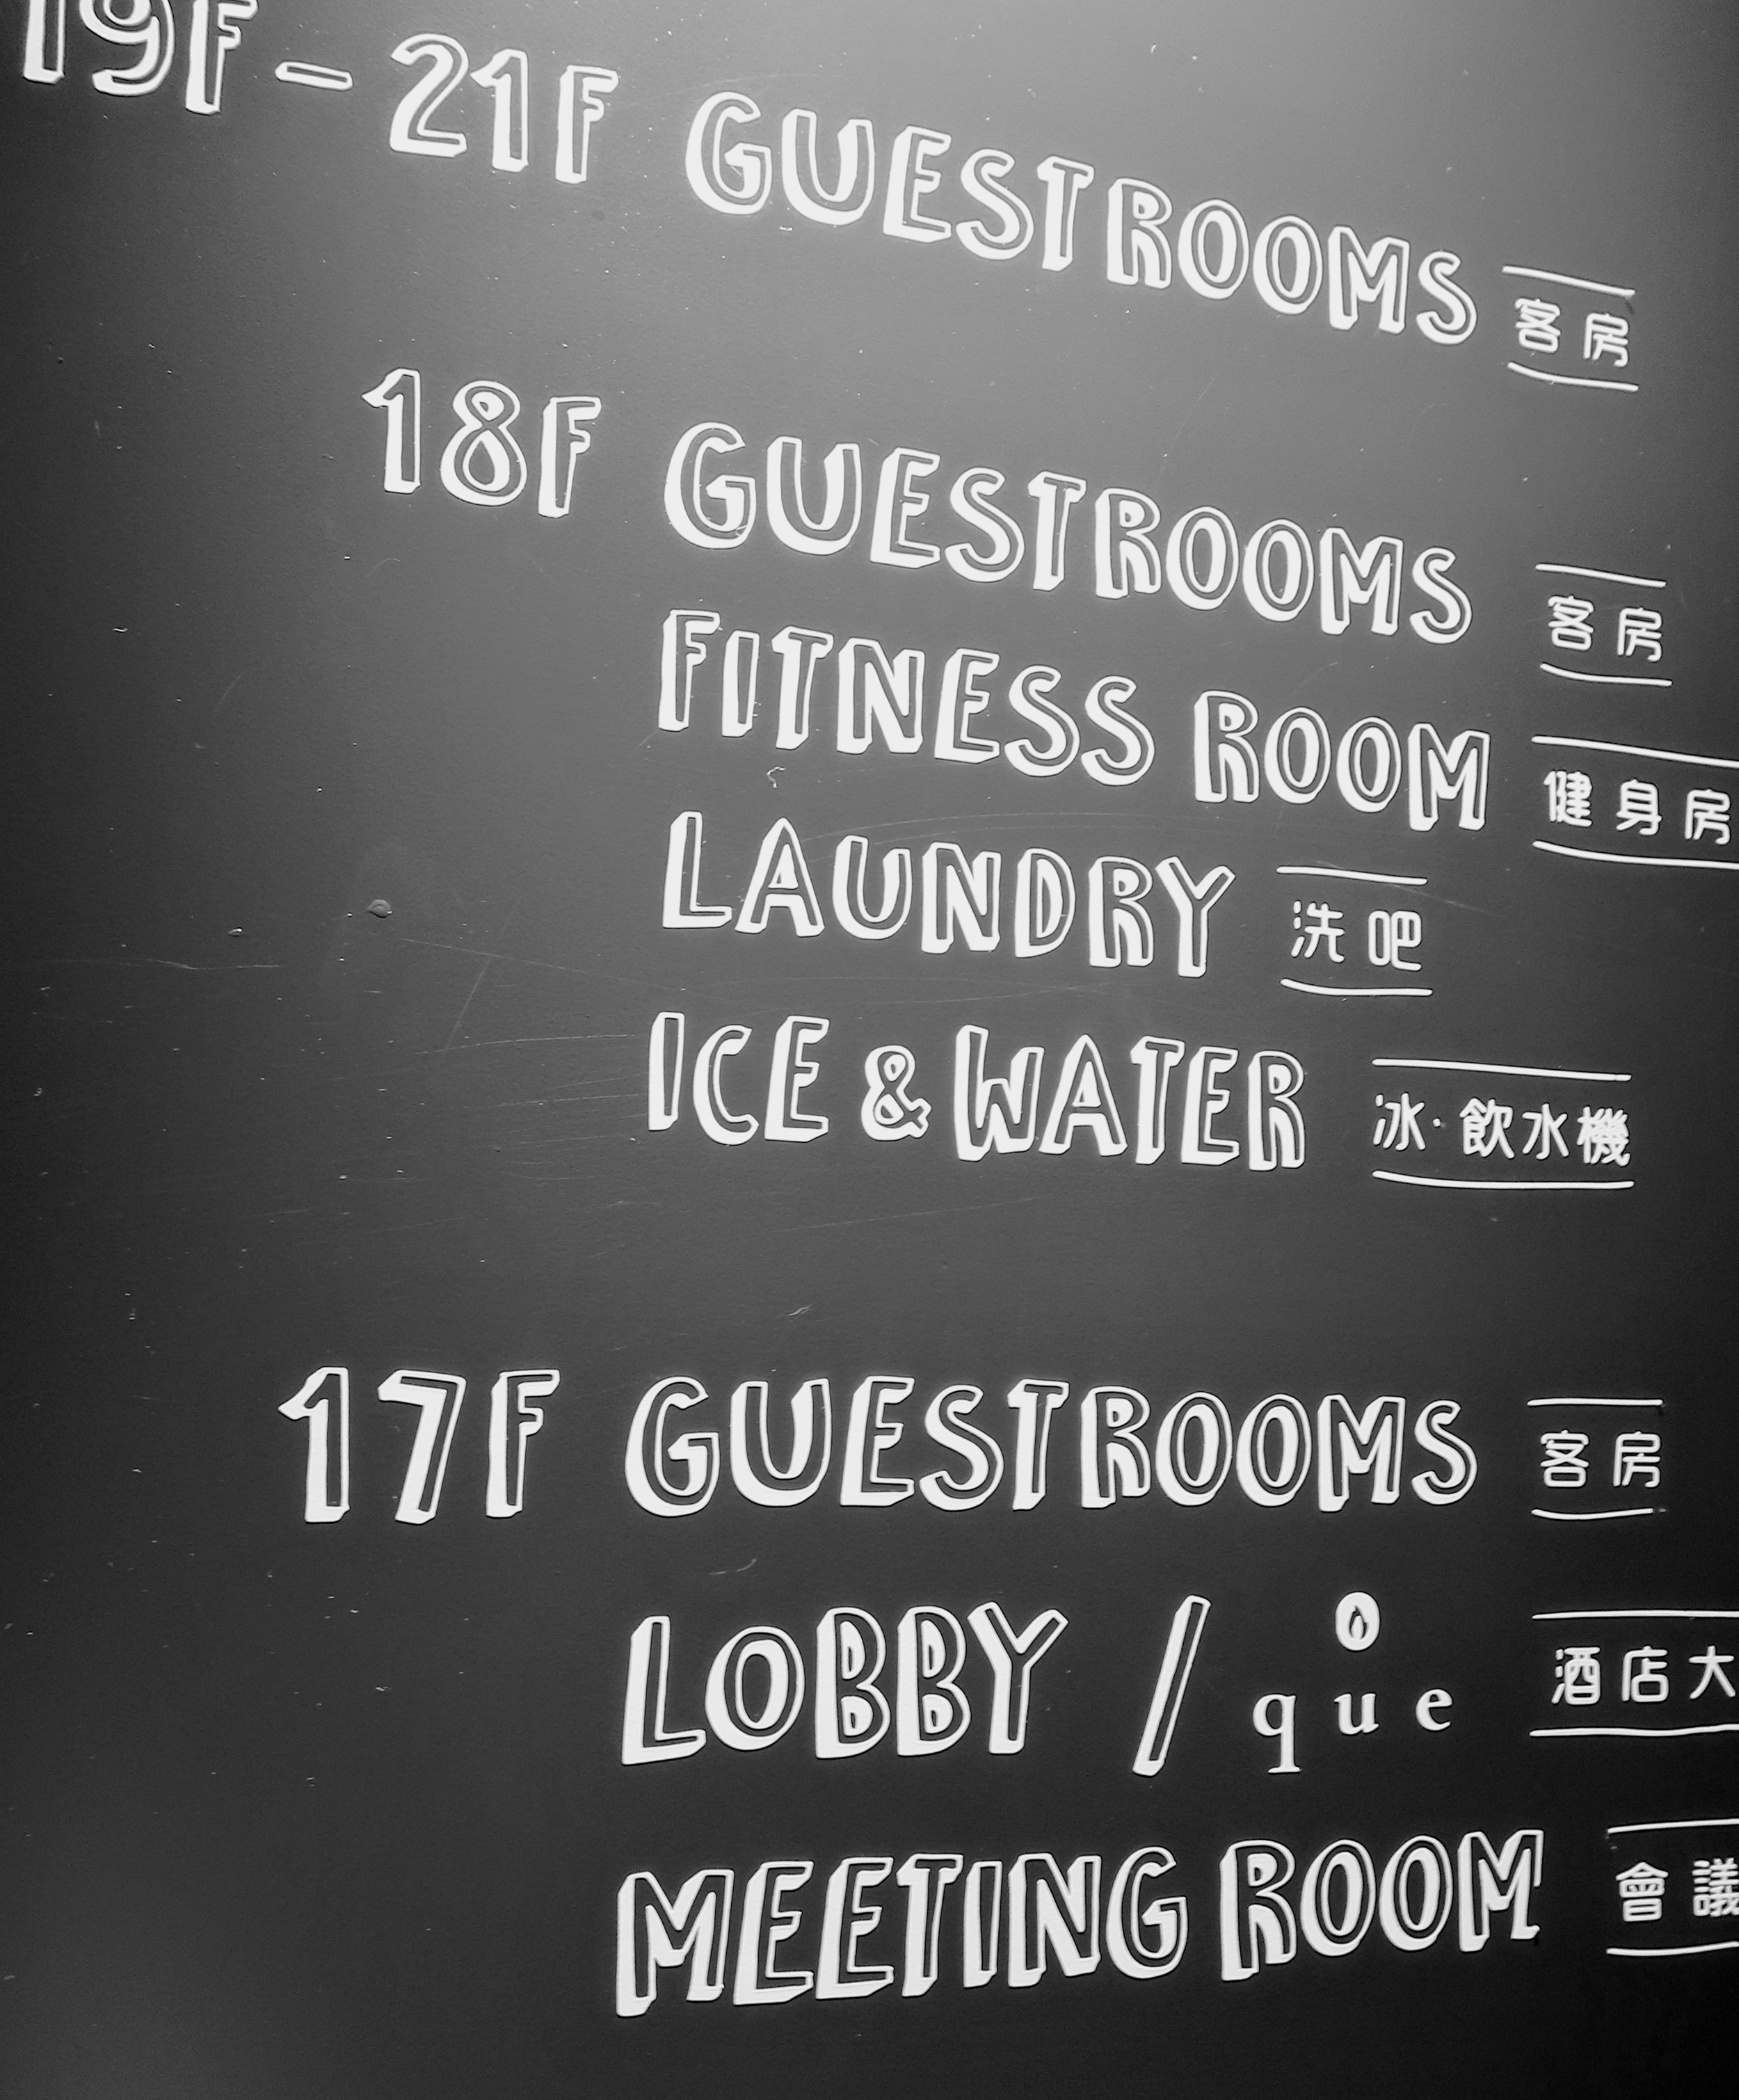 The chalk-like design as a directory in the guest lift.